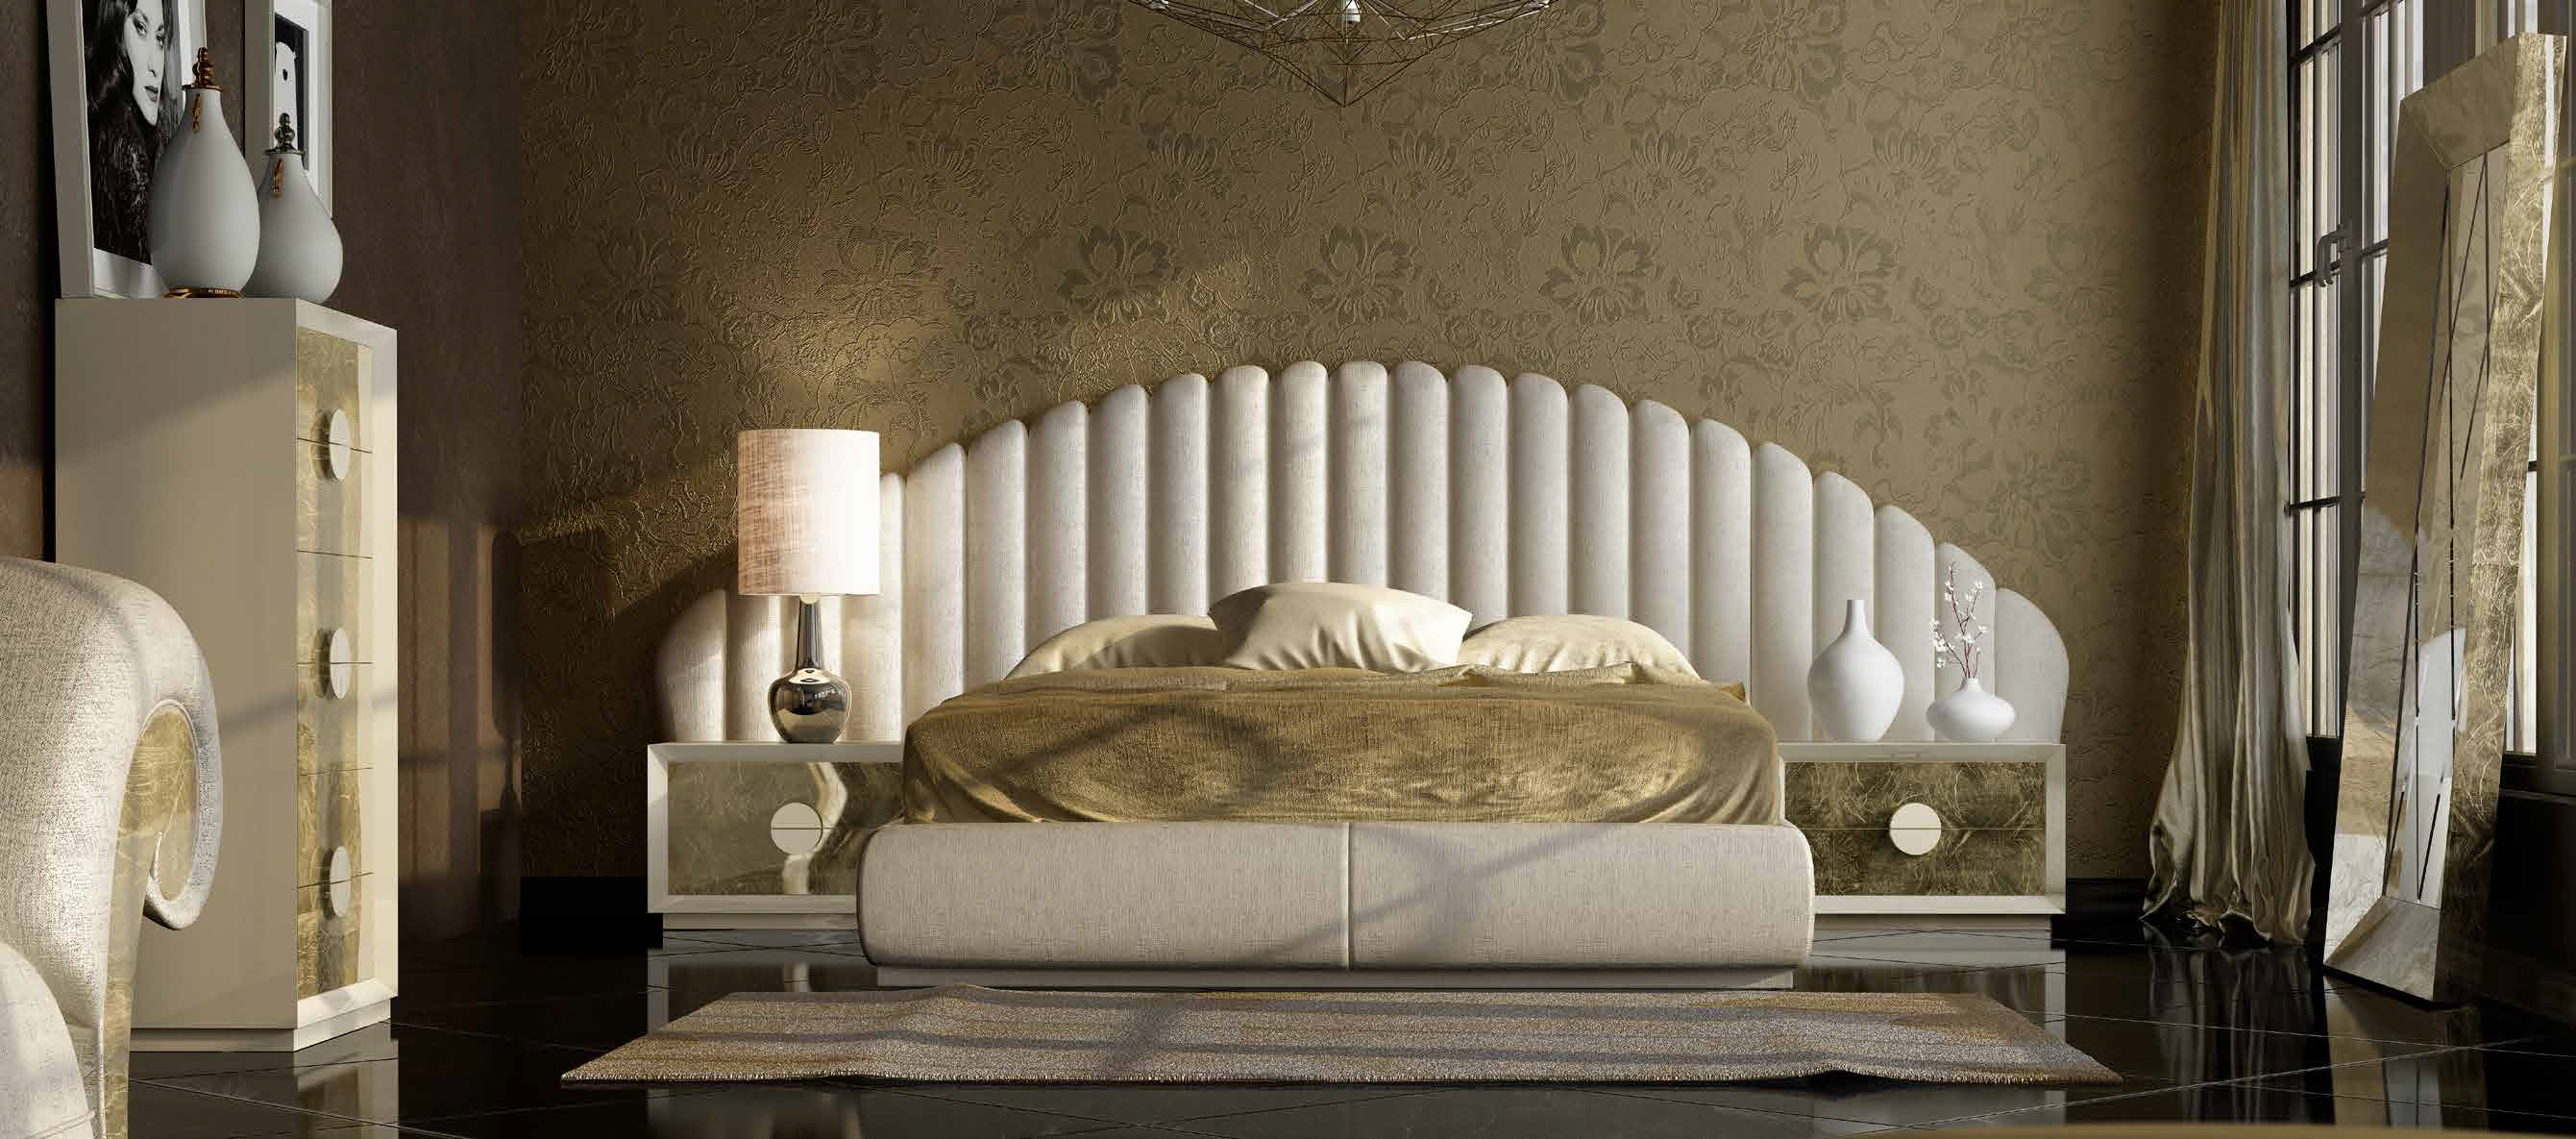 Brands Franco Furniture Bedrooms vol1, Spain DOR 70